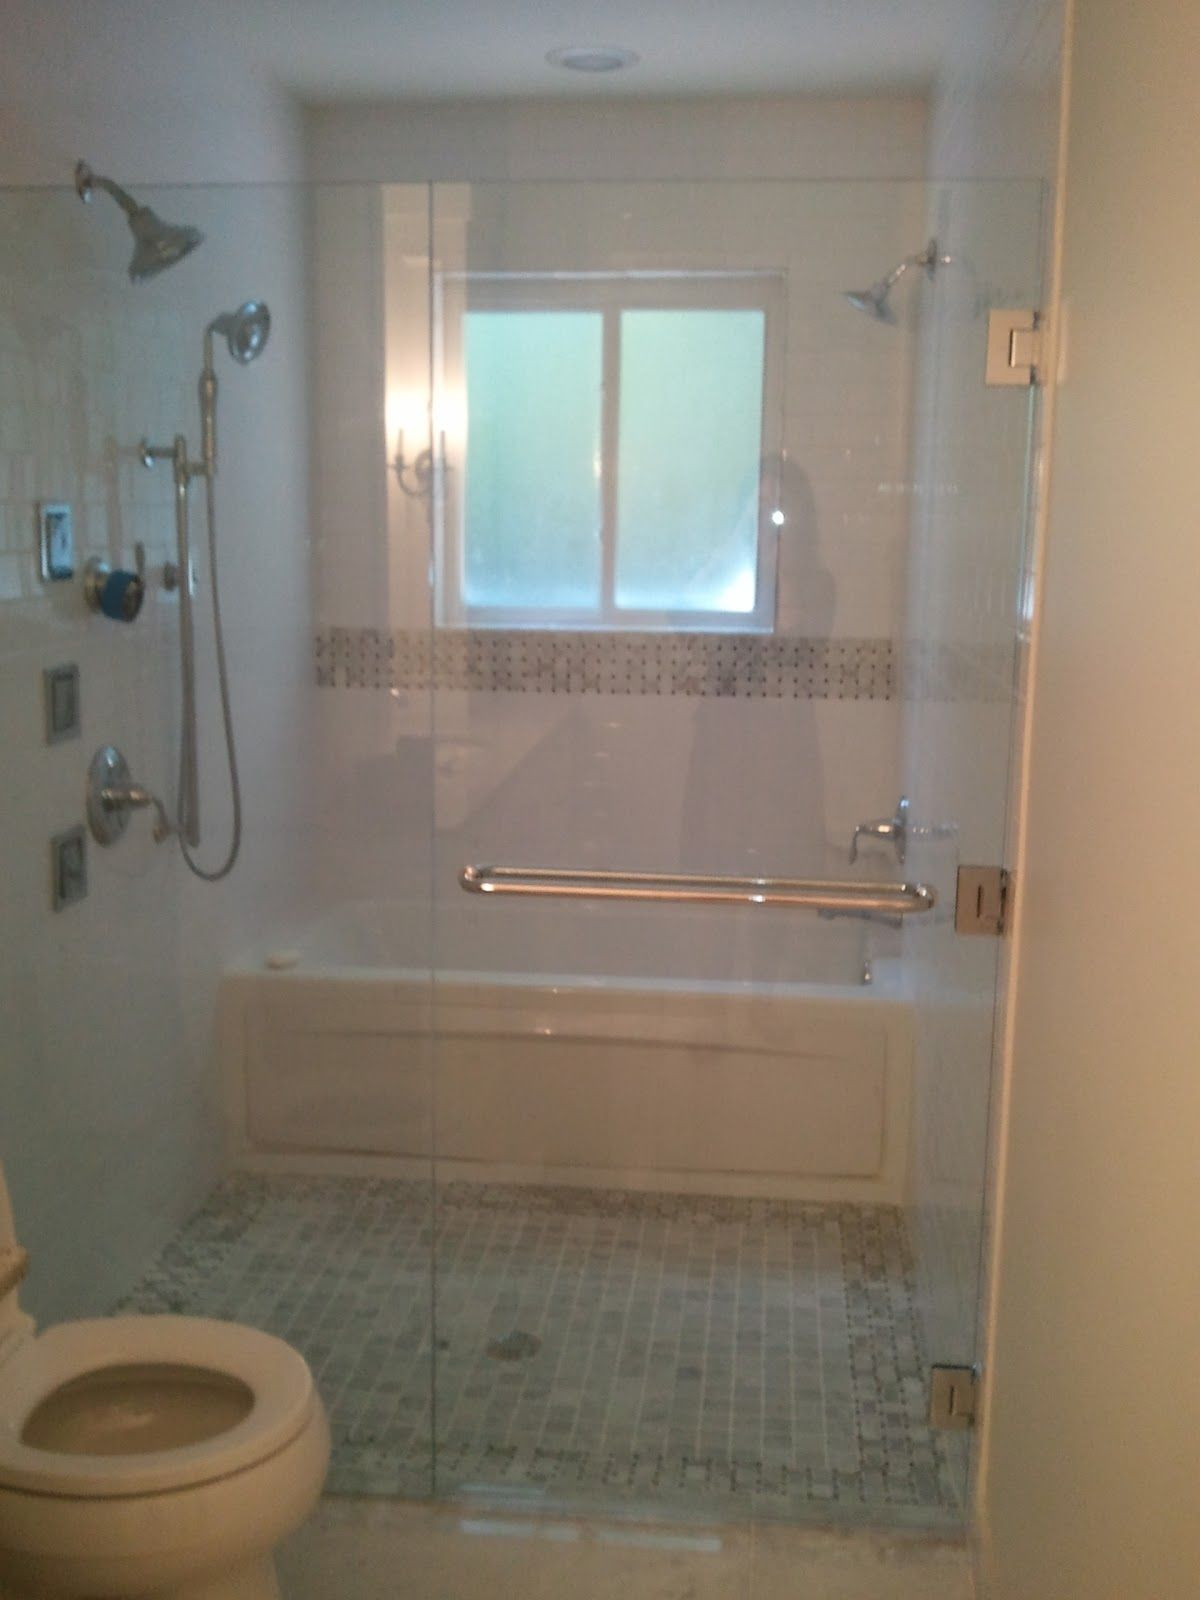 Bathroom Remodel Ideas With Walk In Tub And Shower tub shower conversion - bathroom remodel, products: bathtubs